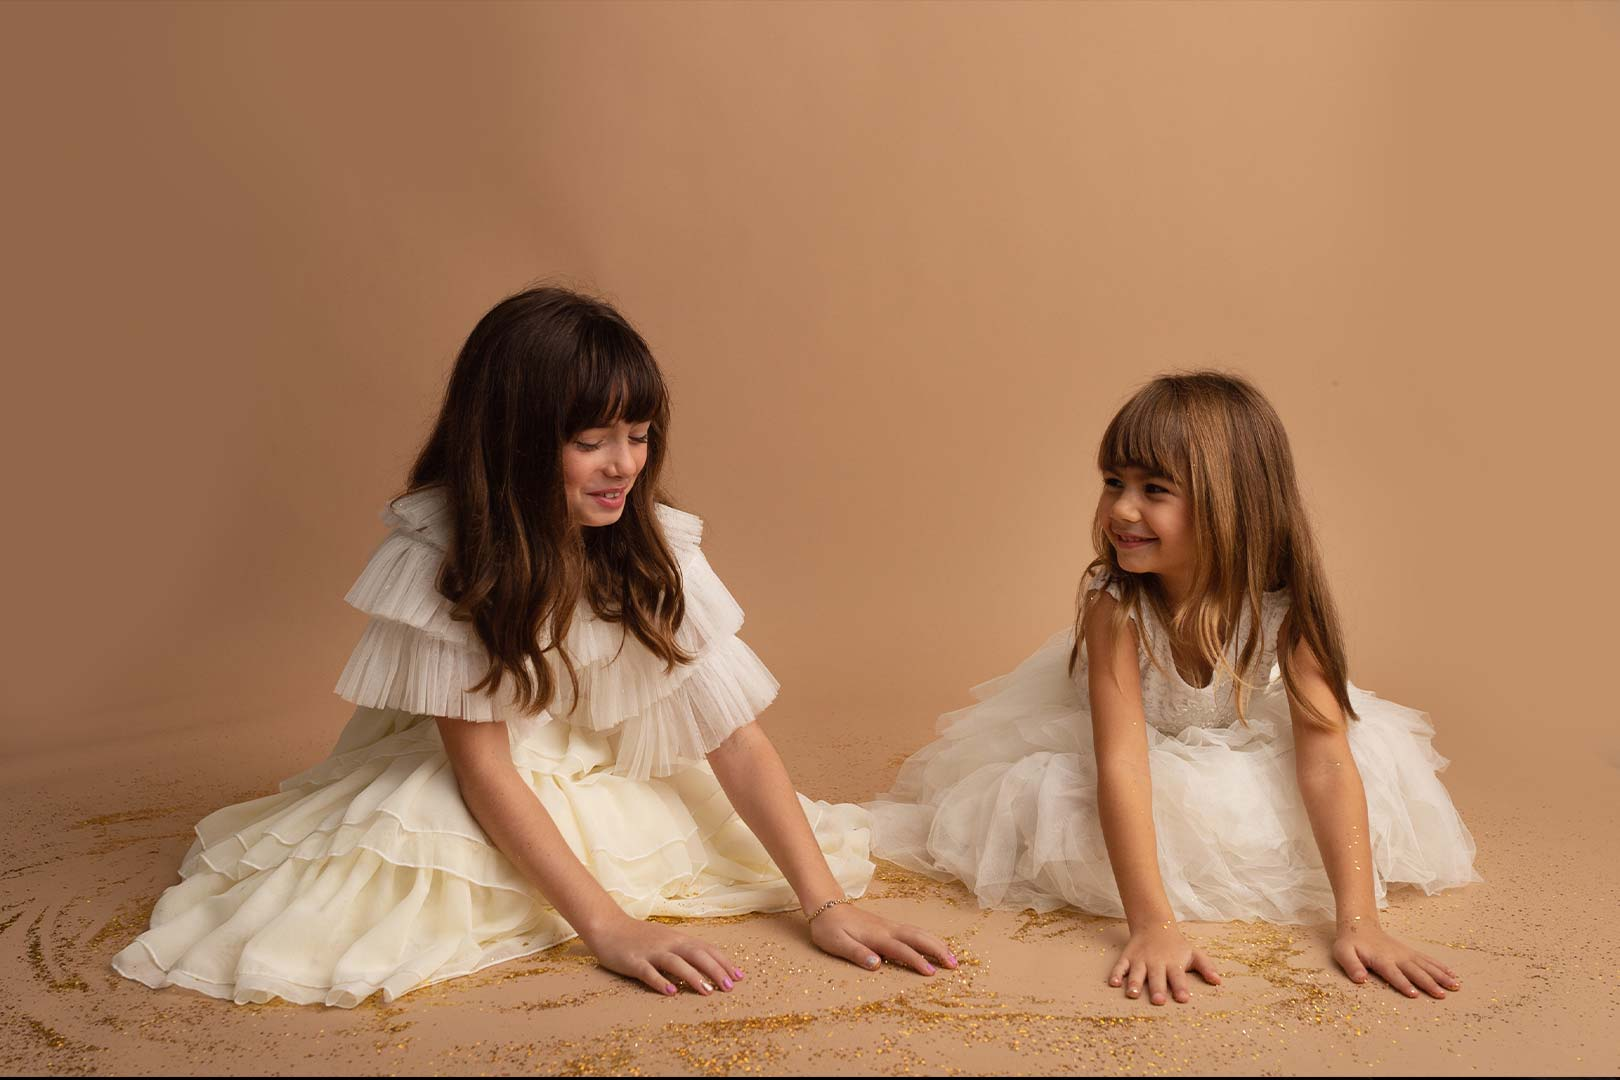 two girls in white dress playing on the floor